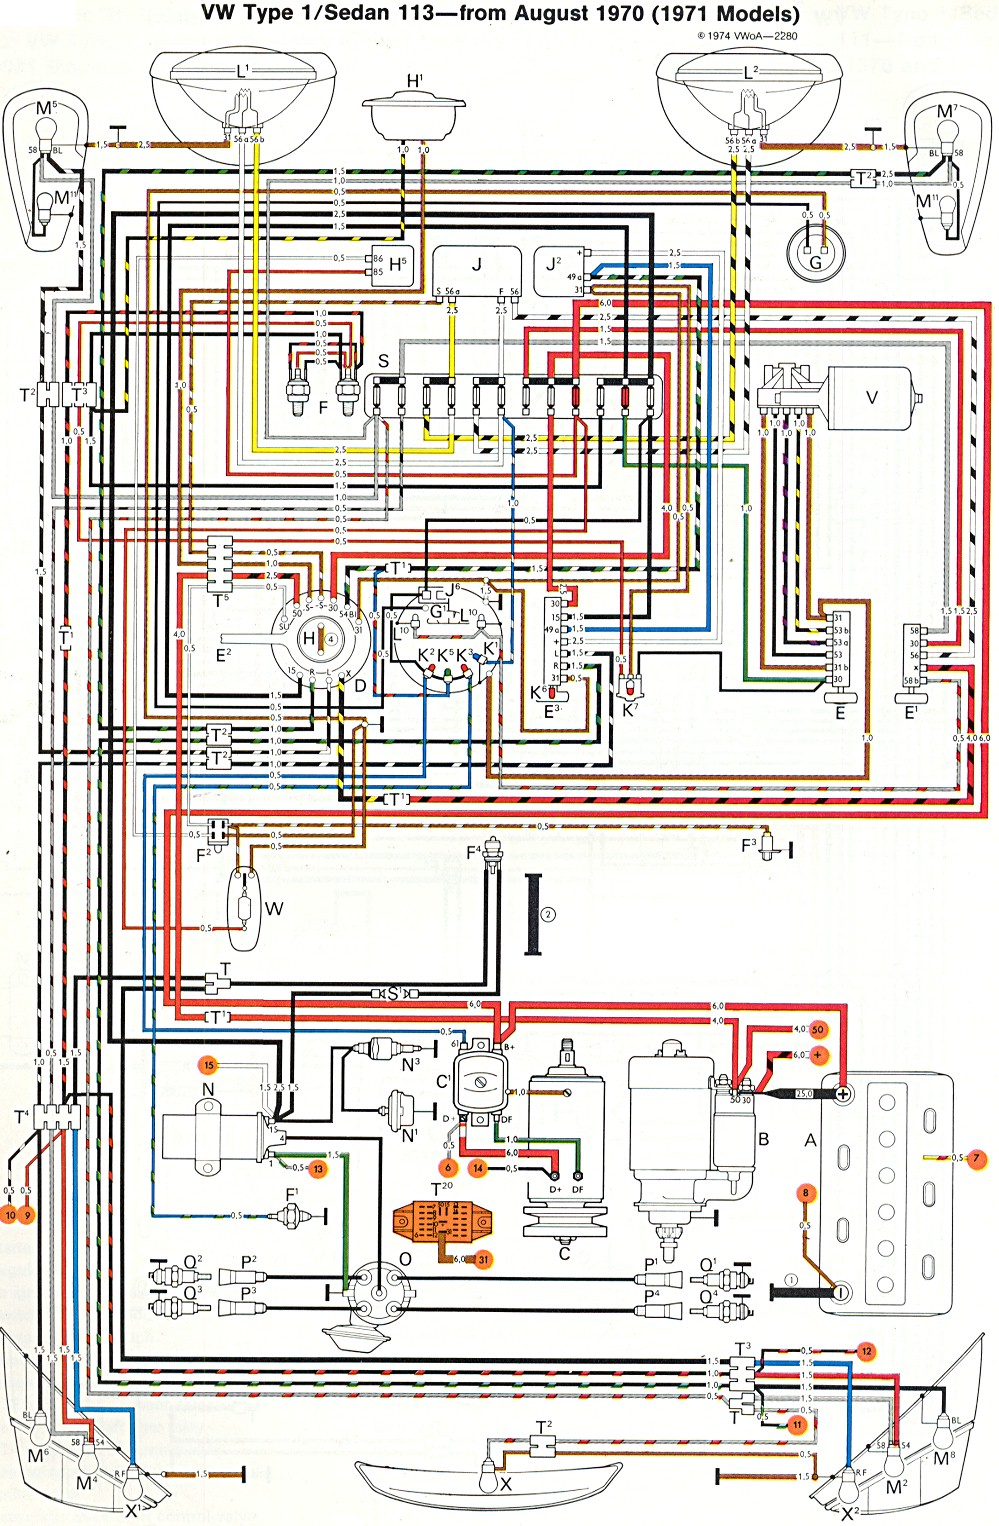 1978 vw bus wiring harness wiring diagramsuper beetle wiring diagram 11 10 spikeballclubkoeln de \\u2022